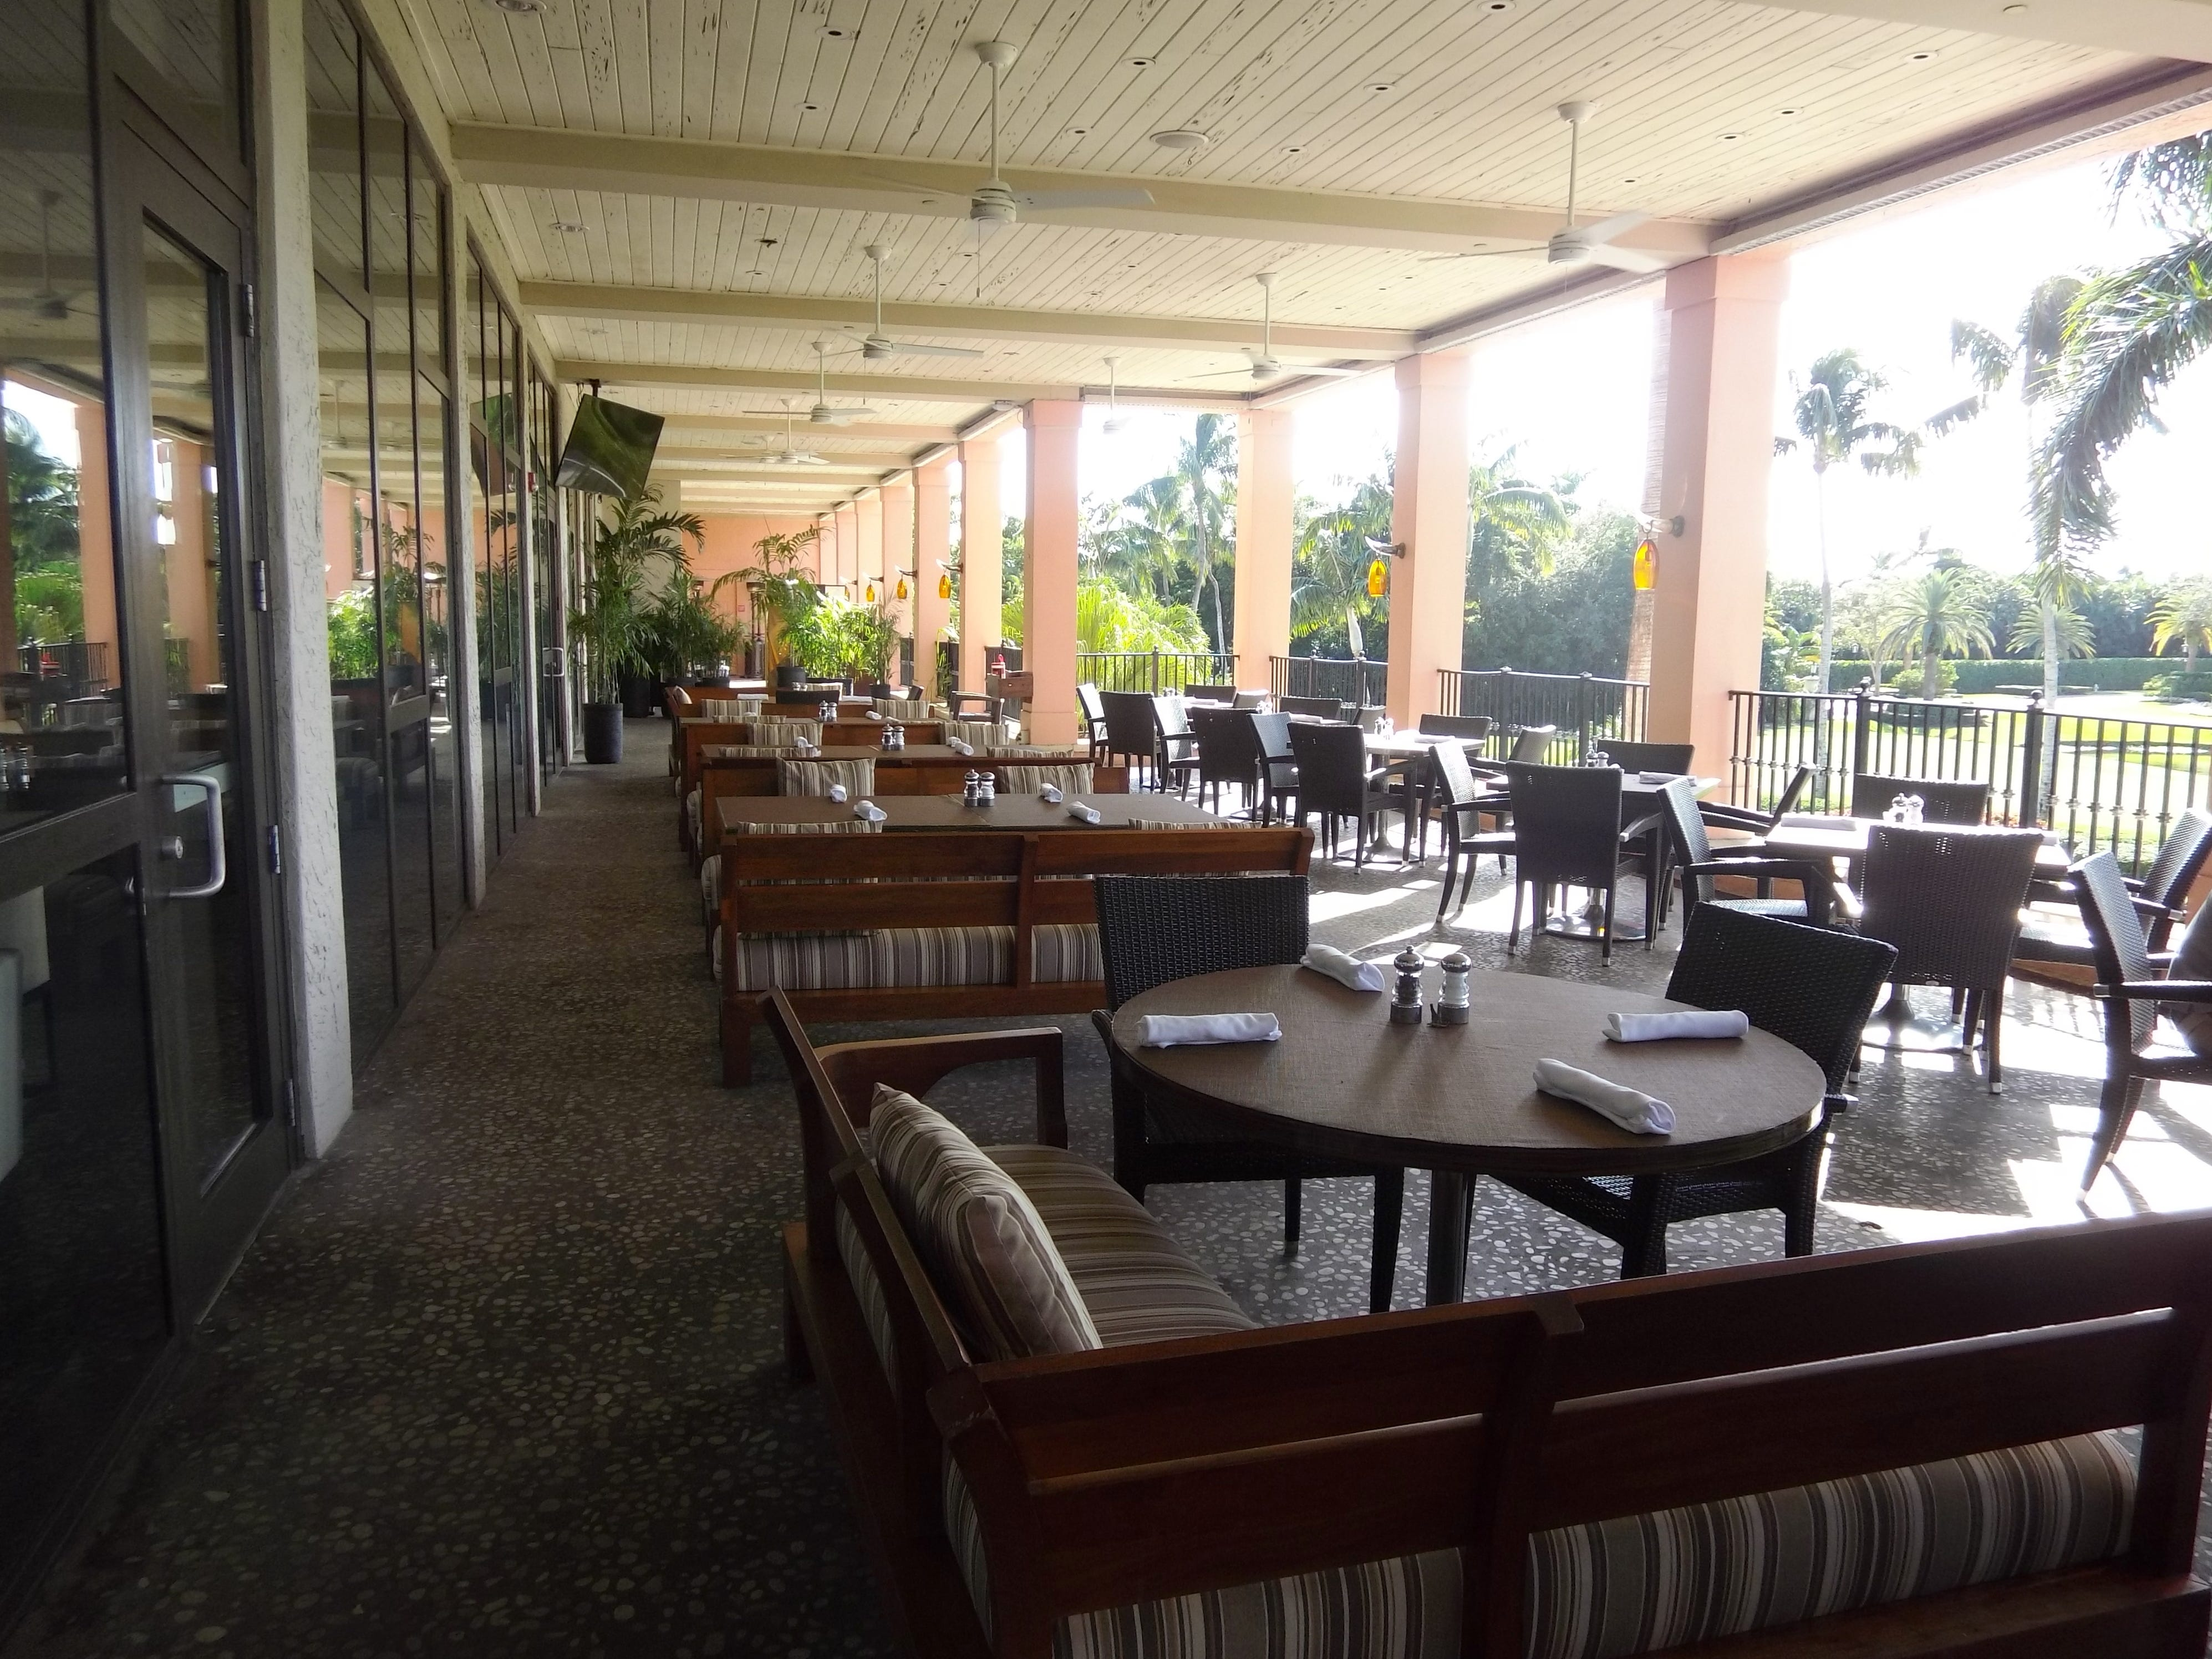 Outdoor dining at 501 East Kitchen & Bar.